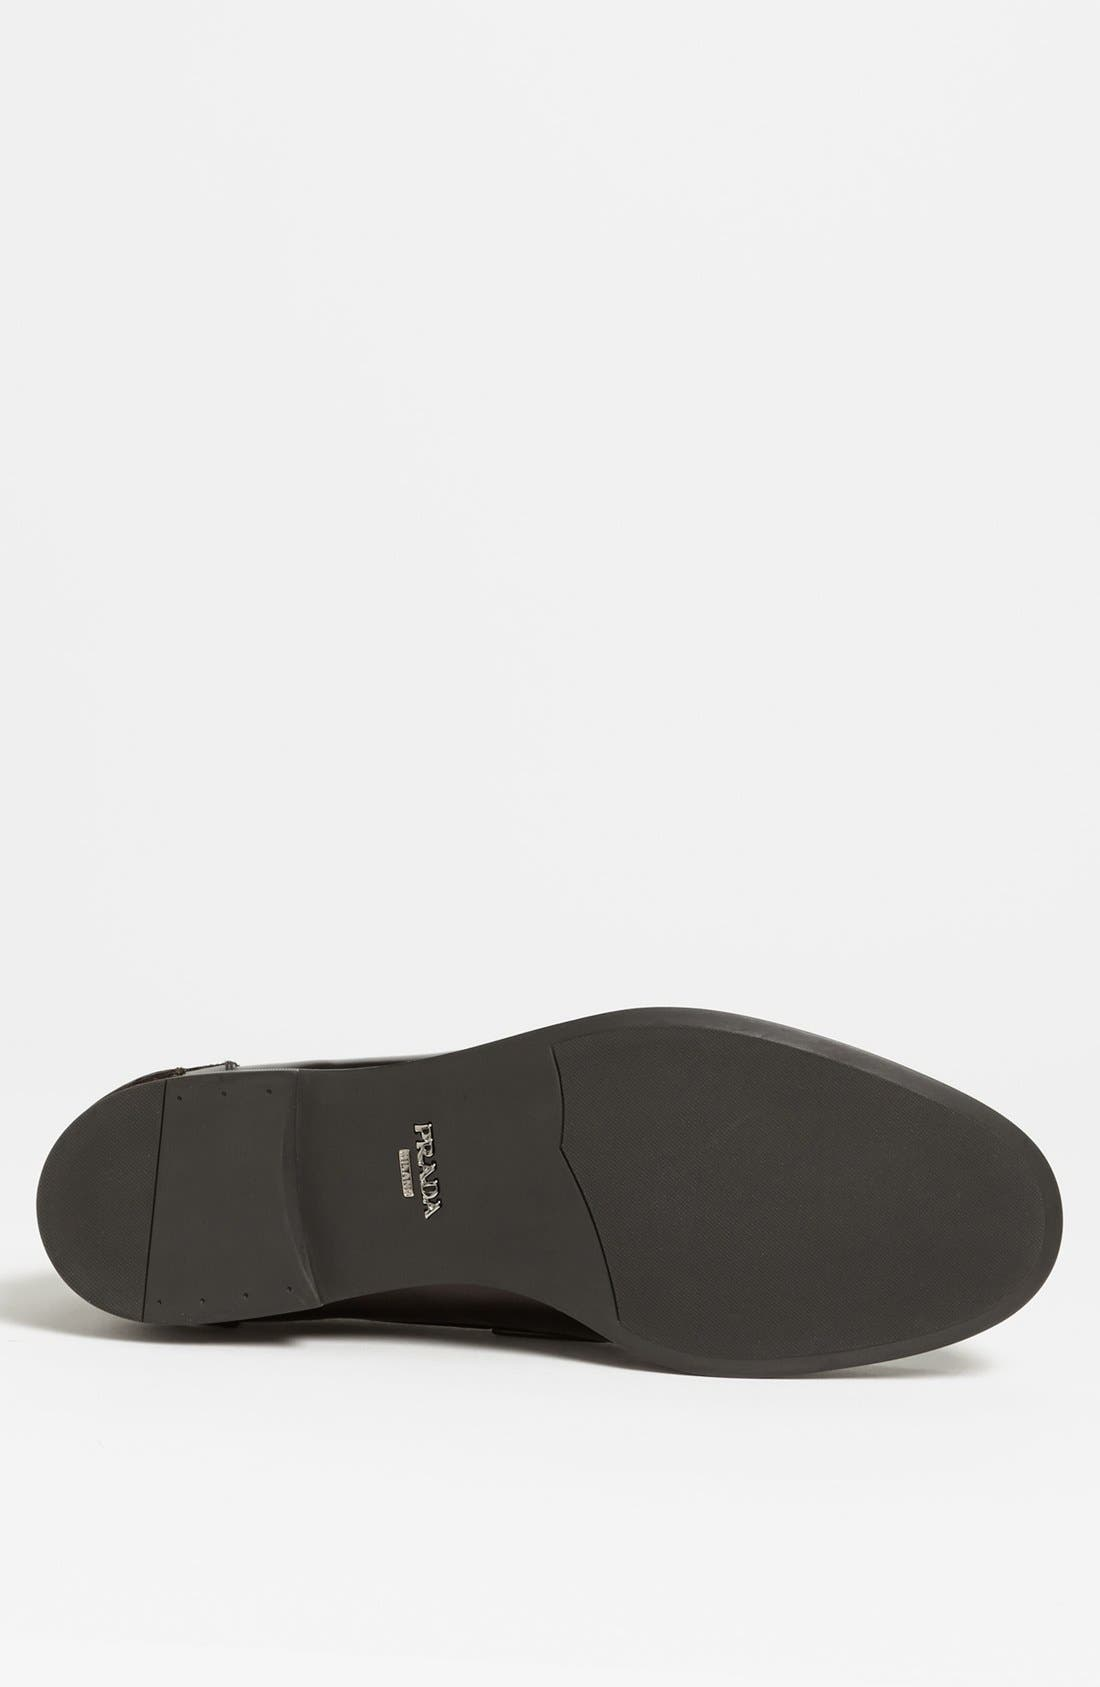 Penny Loafer,                             Alternate thumbnail 4, color,                             Bruciato